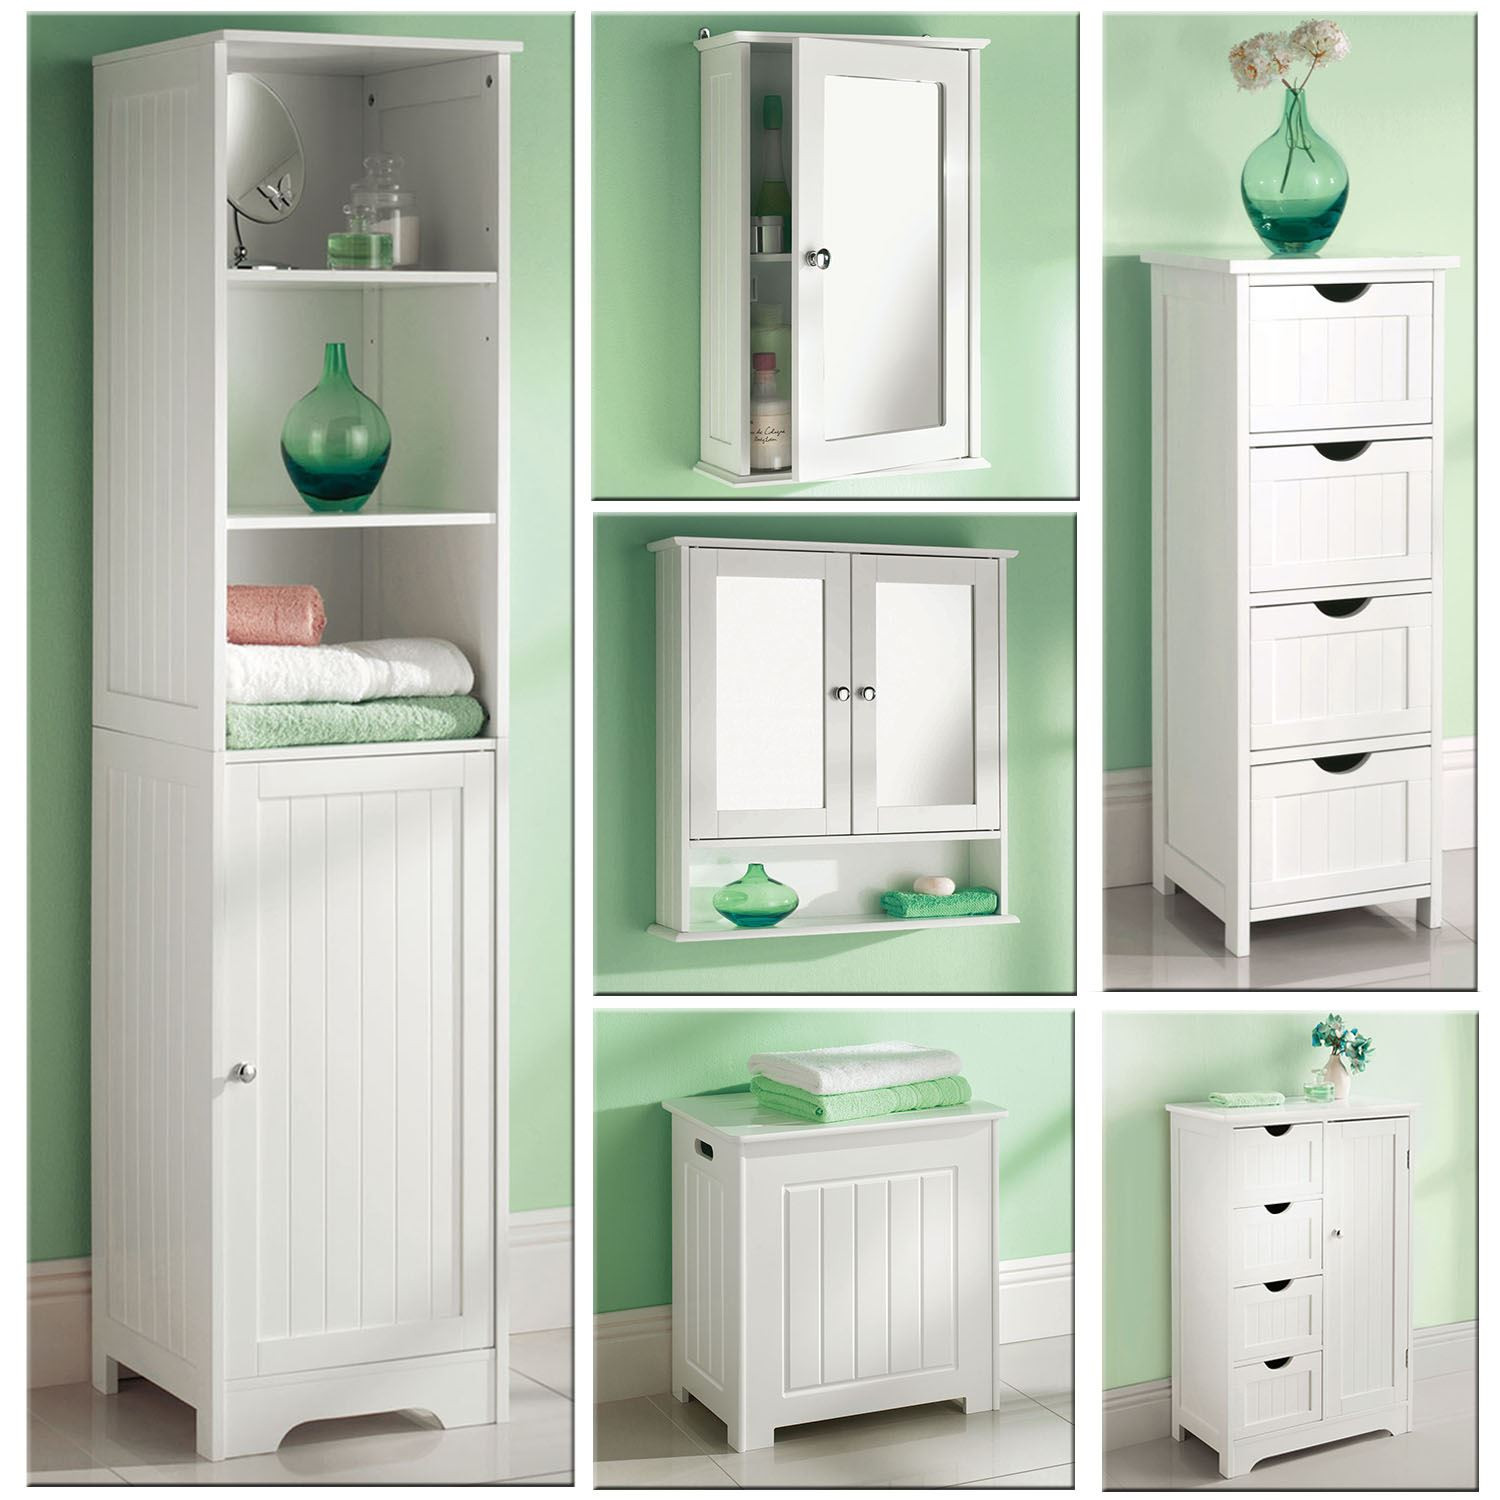 Best ideas about Bedroom Storage Cabinets . Save or Pin White Wooden Bathroom Cabinet Shelf Cupboard Bedroom Now.